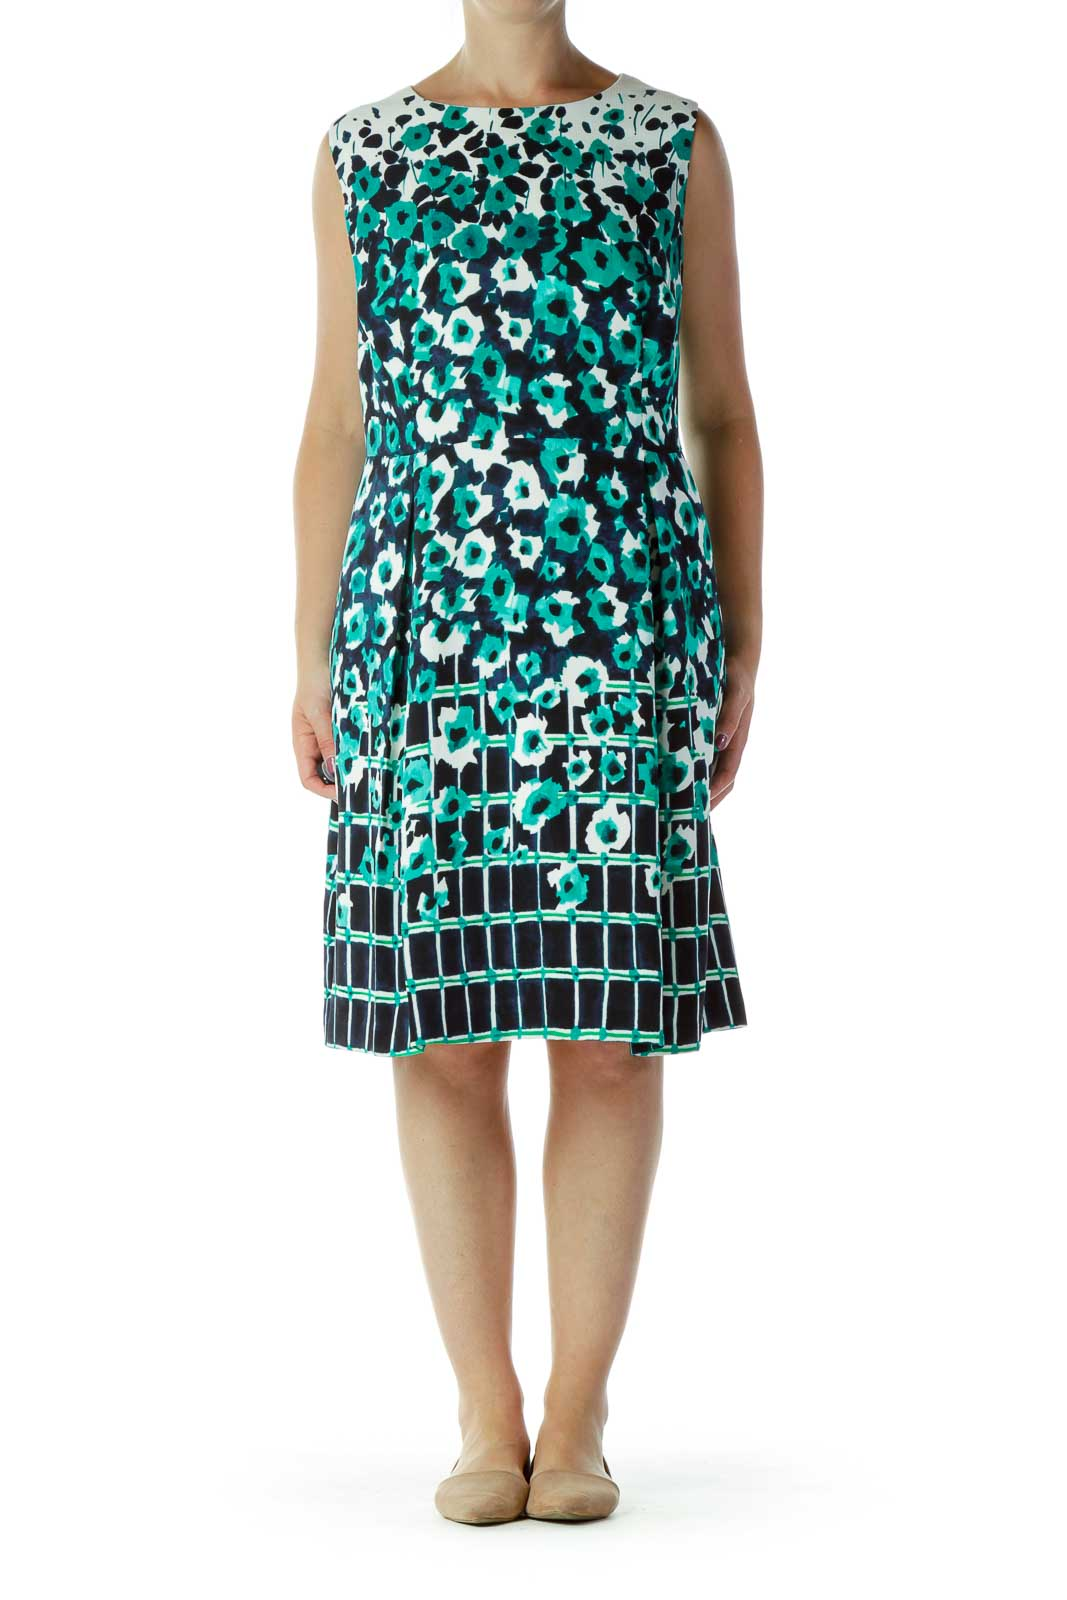 Green Blue White Flower Checkered A-Line Dress